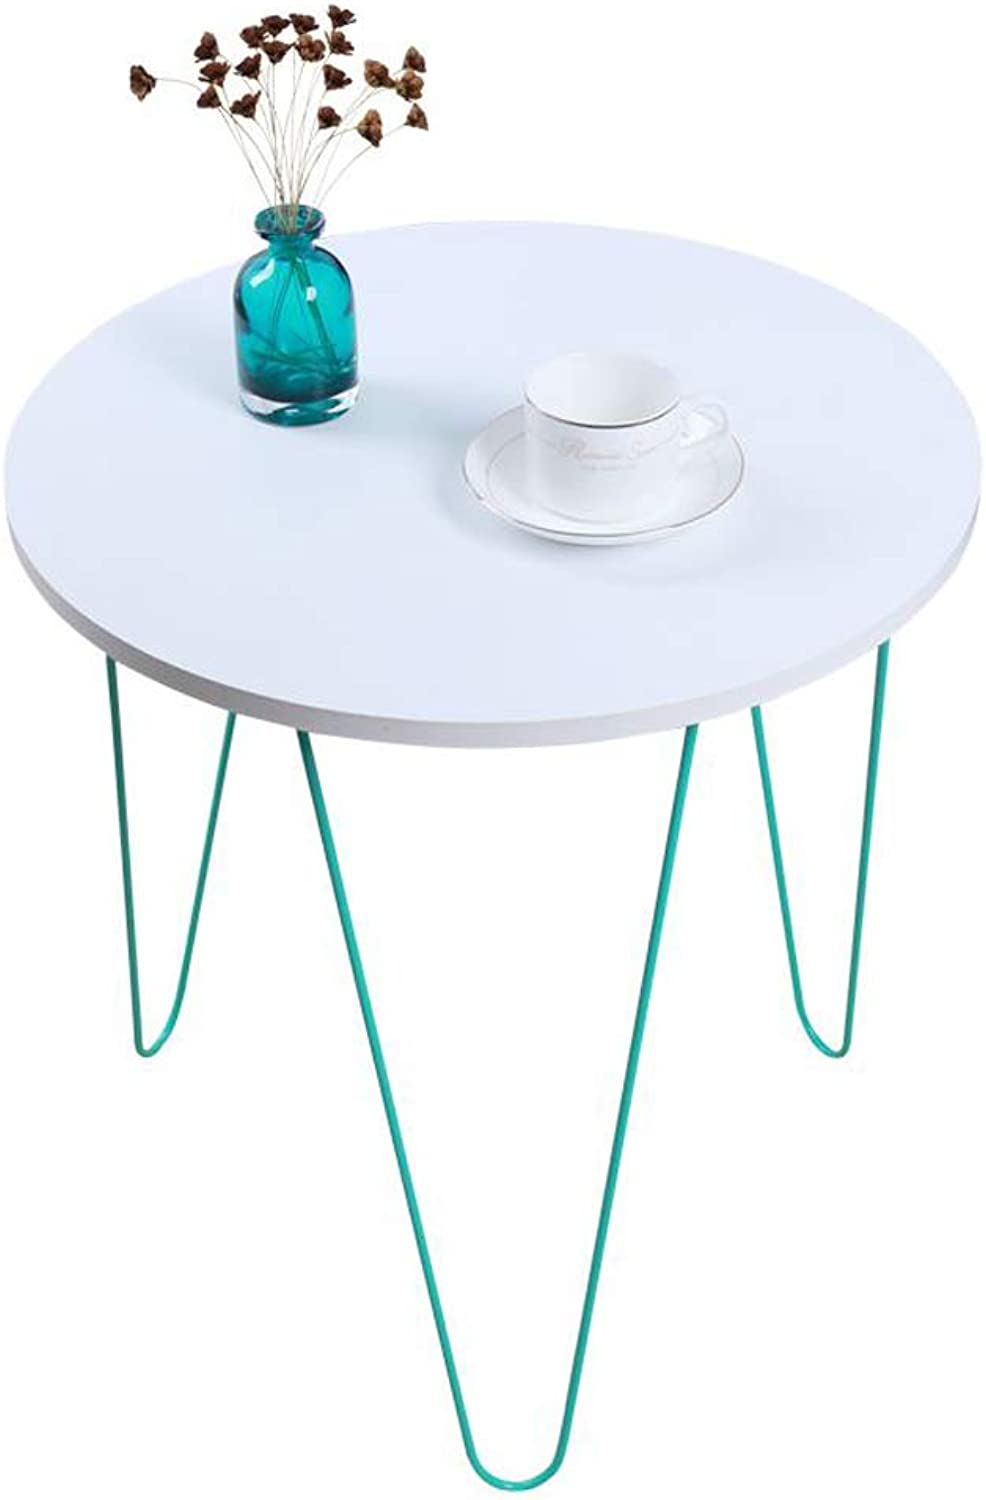 Ailj Table, Leisure Table, Negotiate The Small Round Table, Lazy Table, Bar Table, Creative Table (color   White)